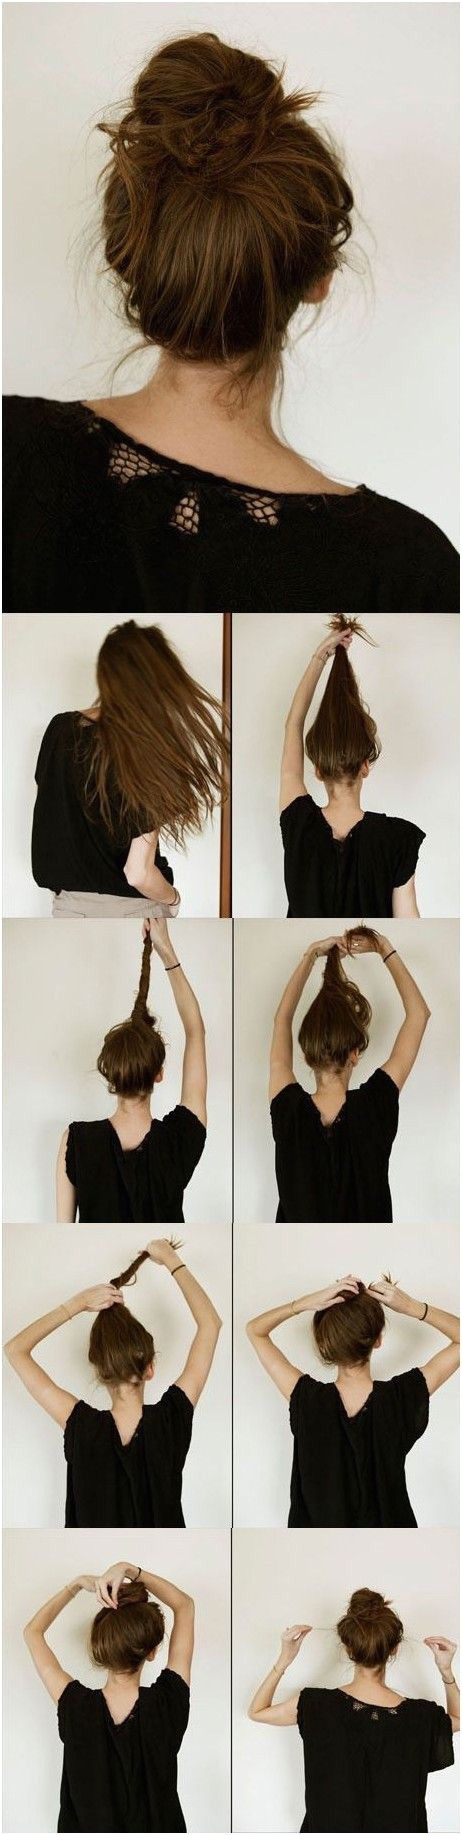 10 Ways to Make Cute Everyday Hairstyles Long Hair Tutorials PoPular Haircuts